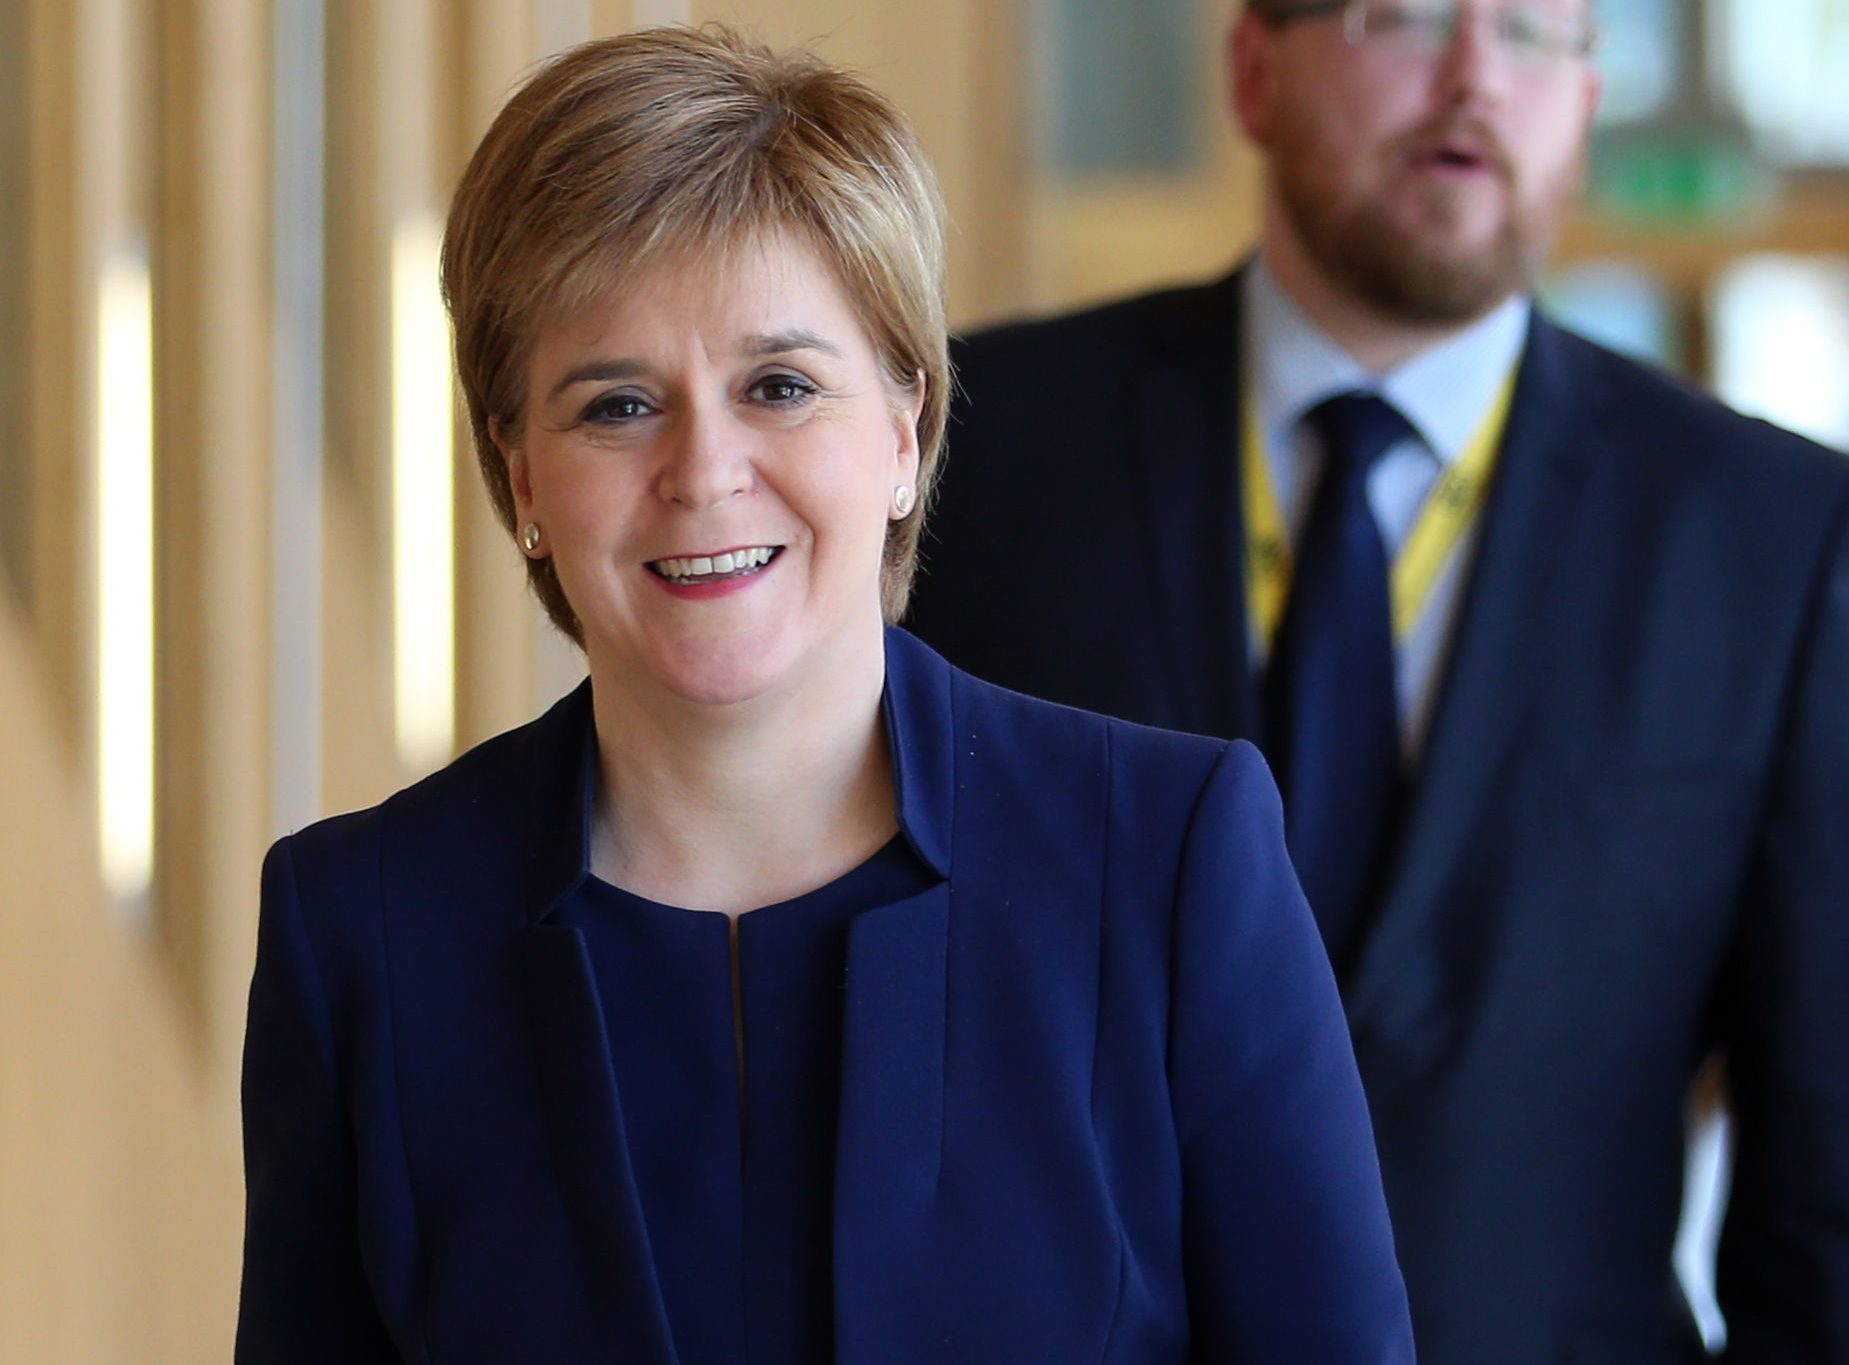 First Minister Nicola Sturgeon arrives ahead of First Minister's Questions at the Scottish Parliament in Edinburgh. (Jane Barlow/PA Wire)